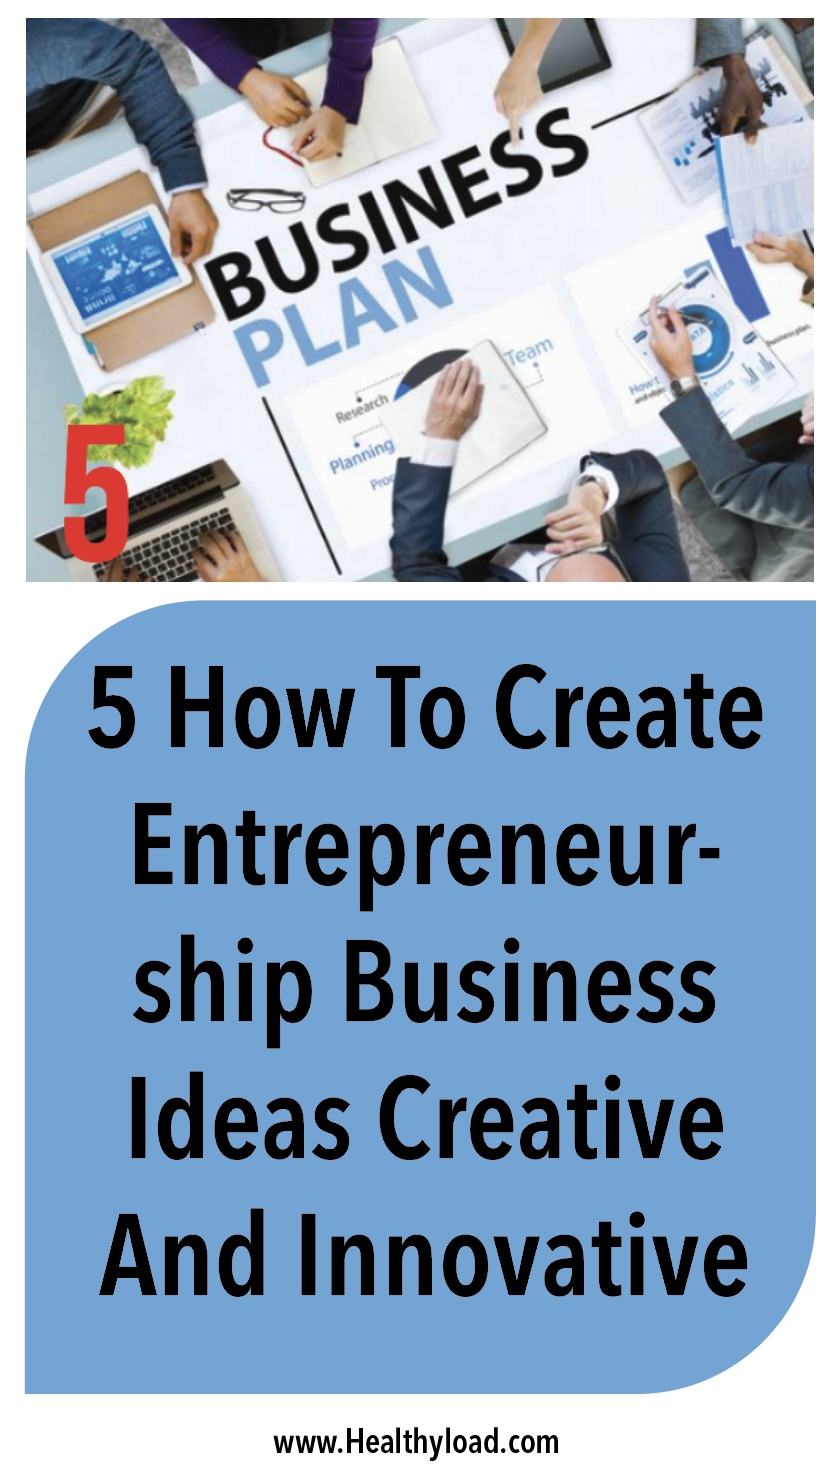 10 Unique How To Generate Business Ideas 5 how to create entrepreneurship business ideas creative and 2020